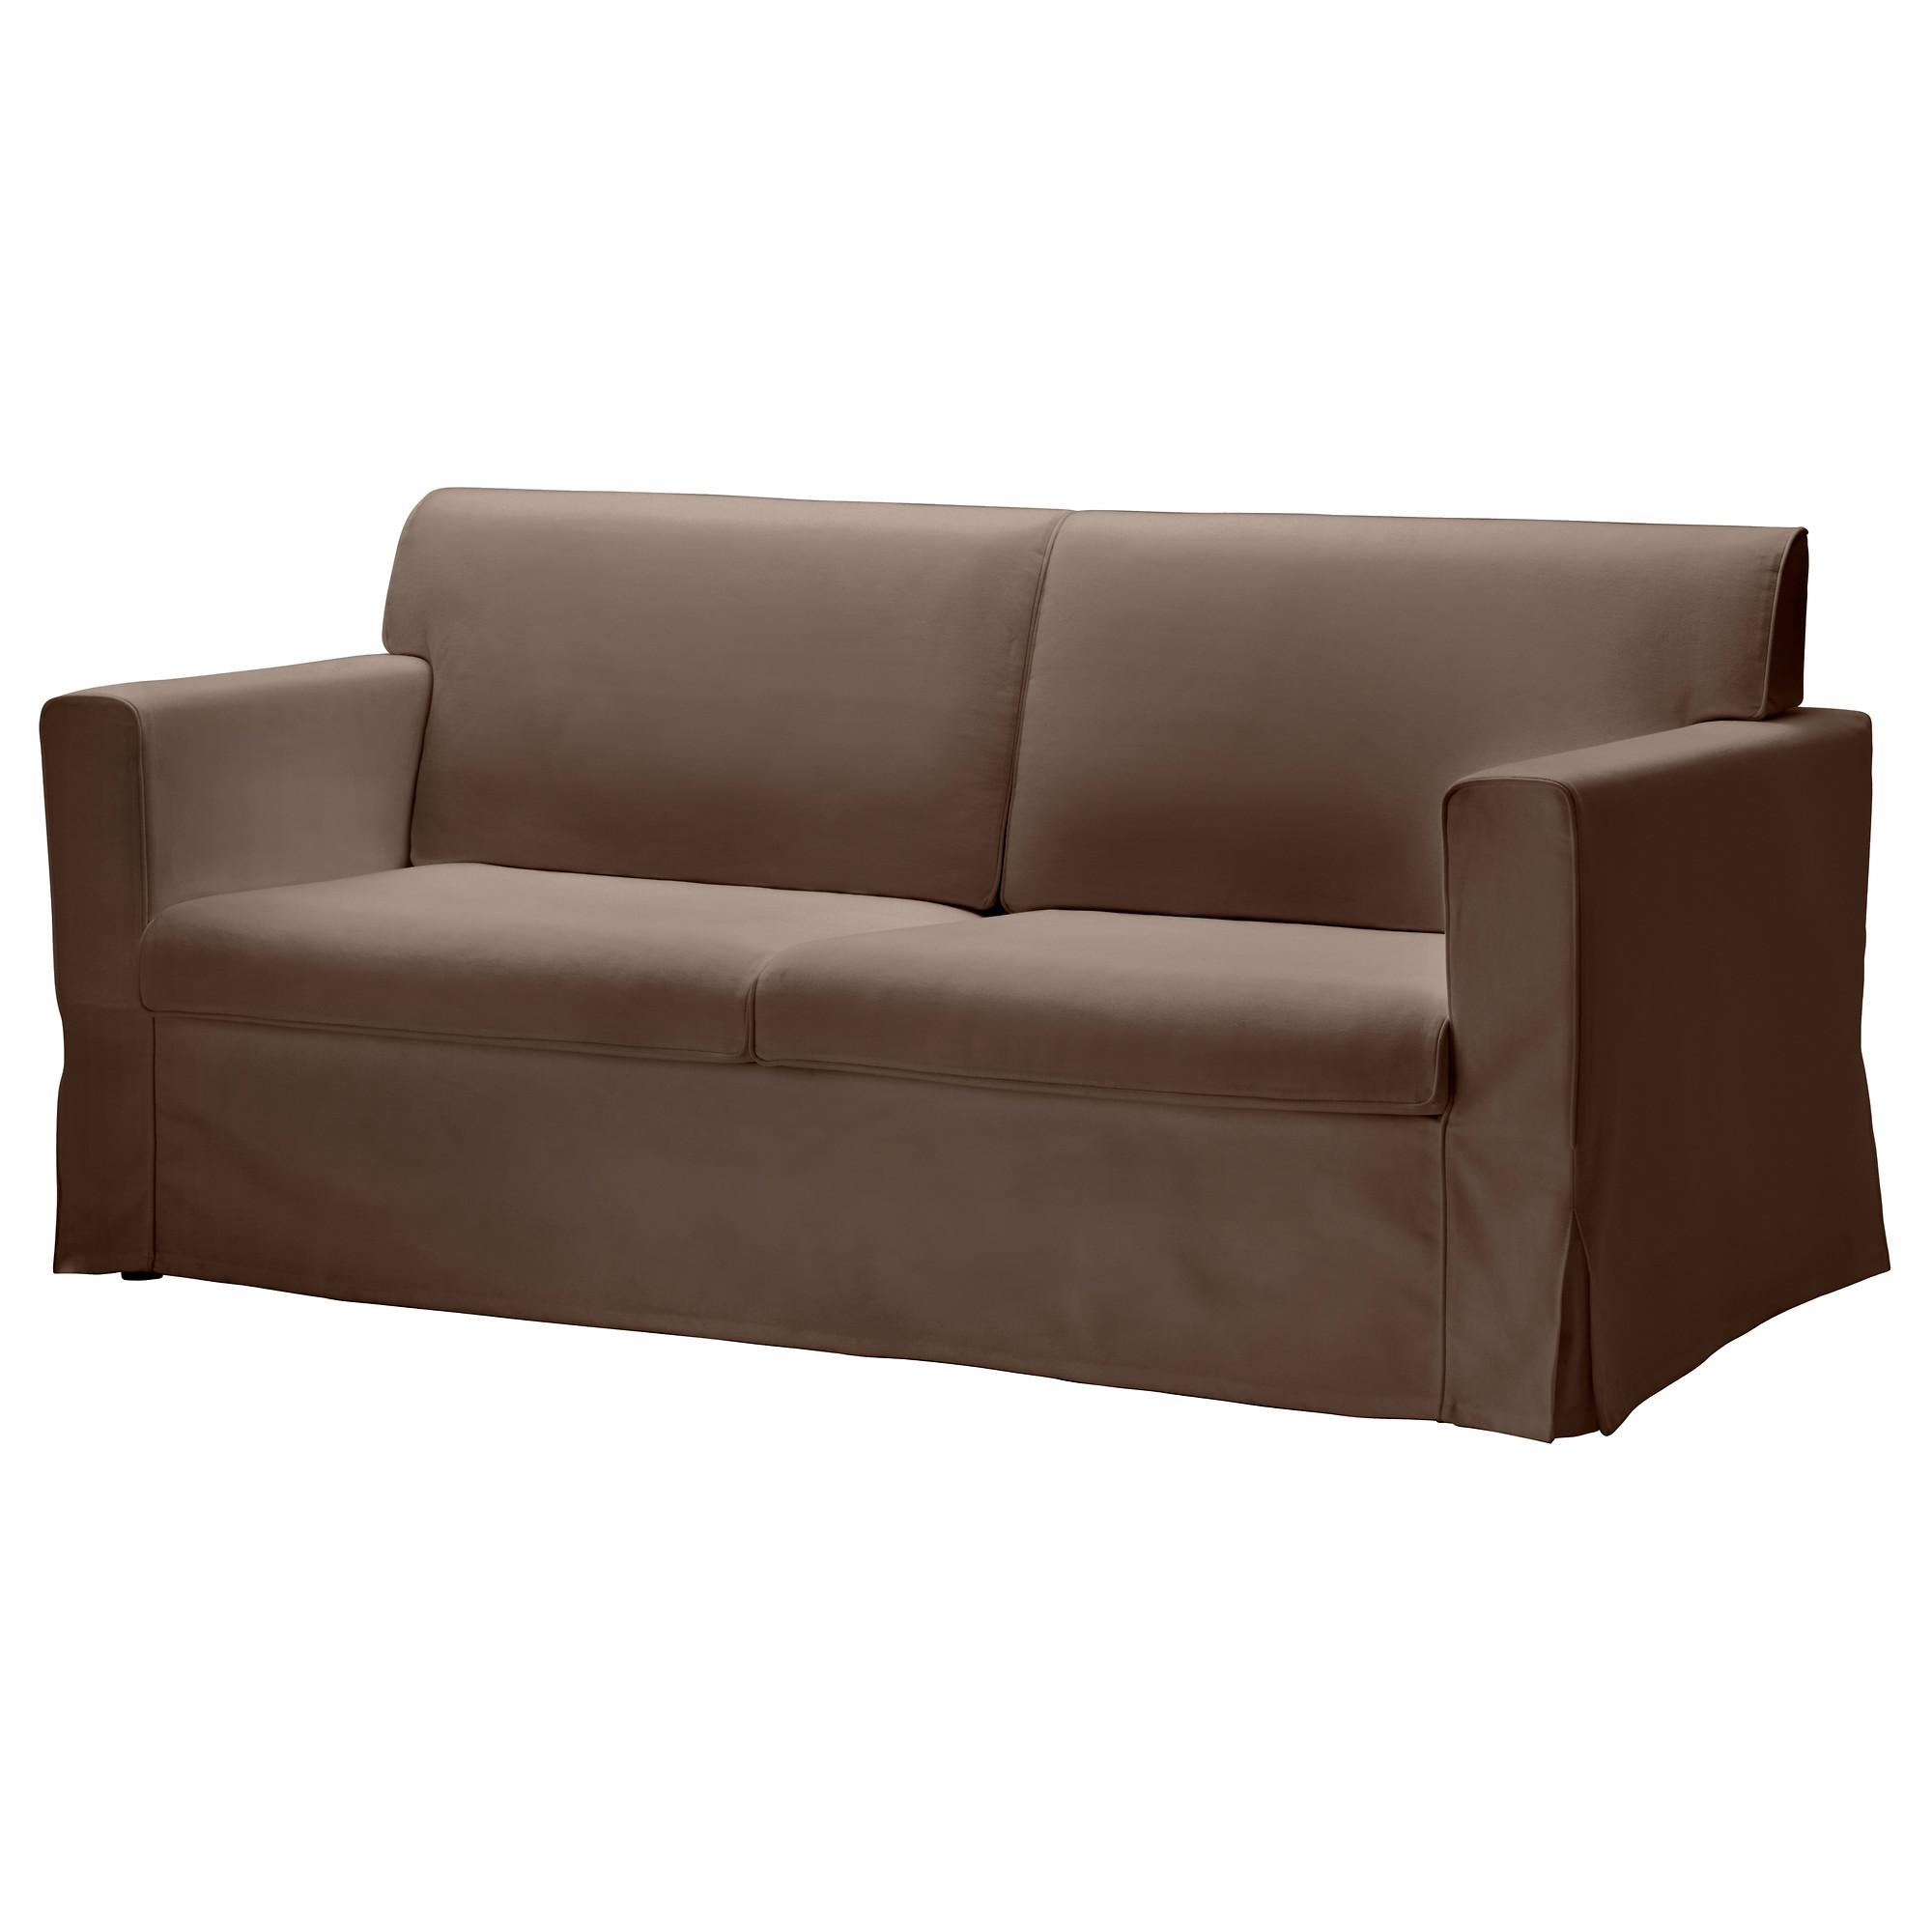 Simple sofas turkish sofas oversized sofa sets by for Design sofa